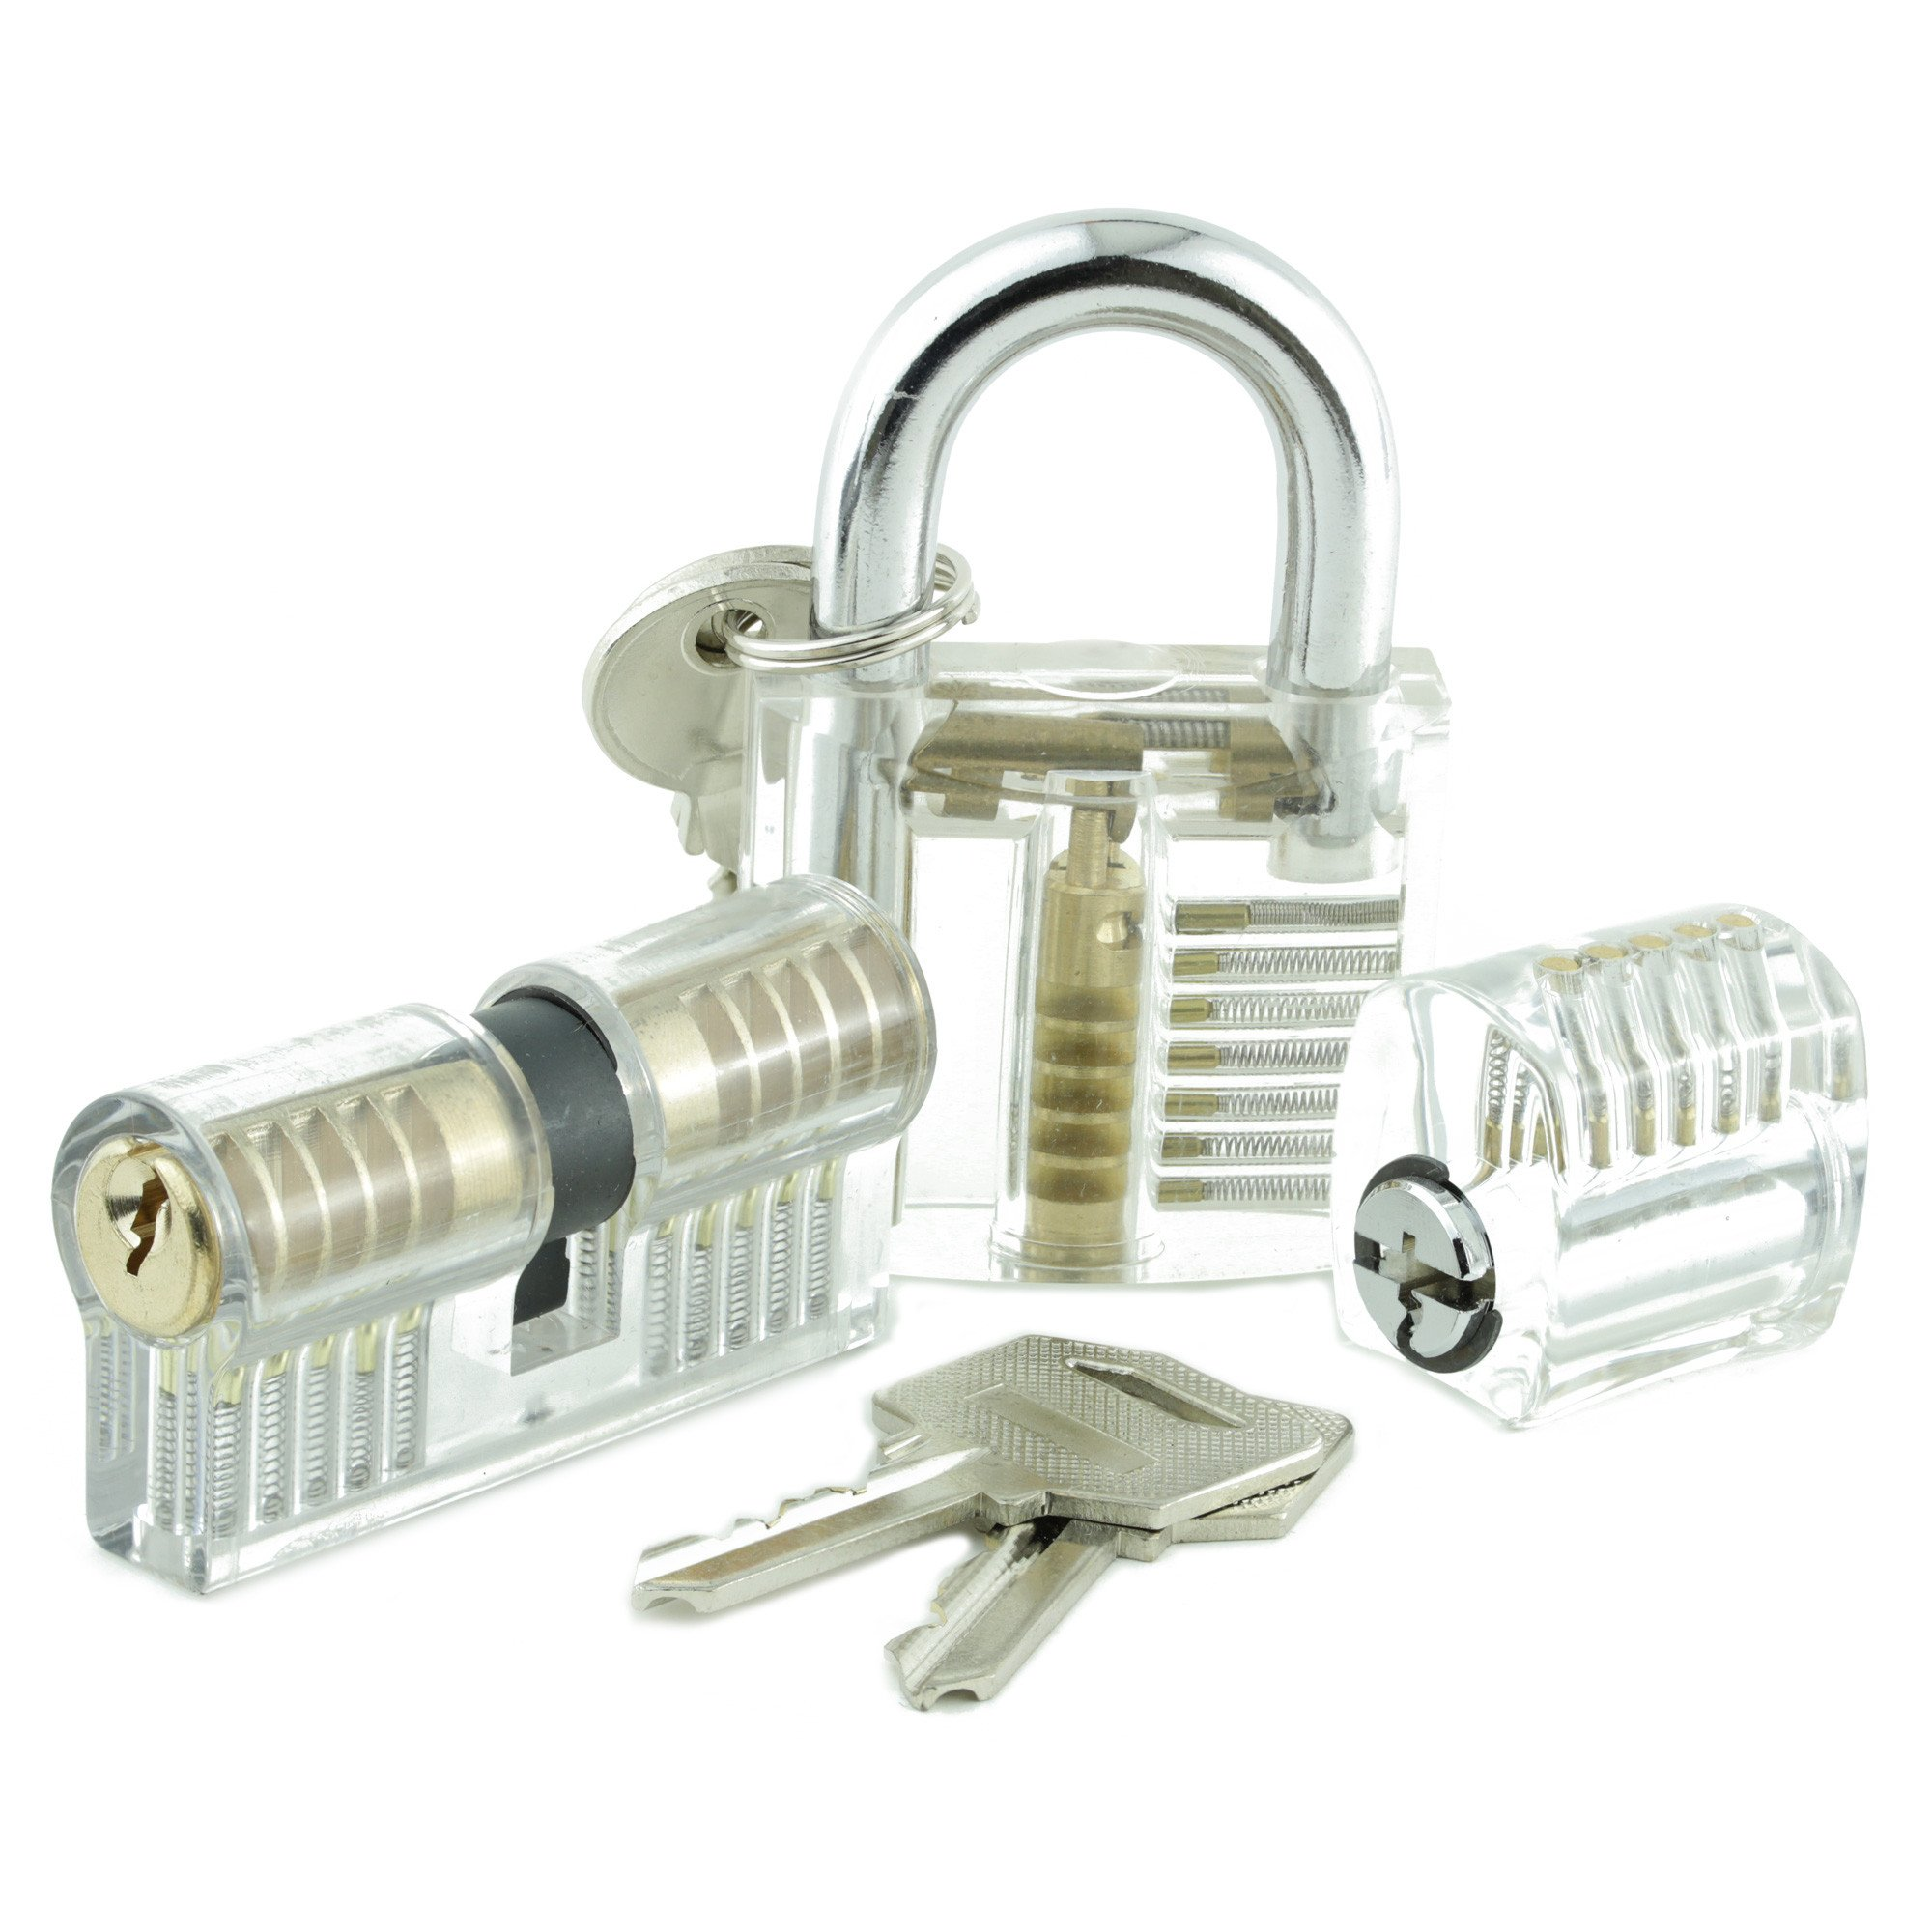 Dangerfield Training / Practice Locks for Lock Pickers - Set of ...